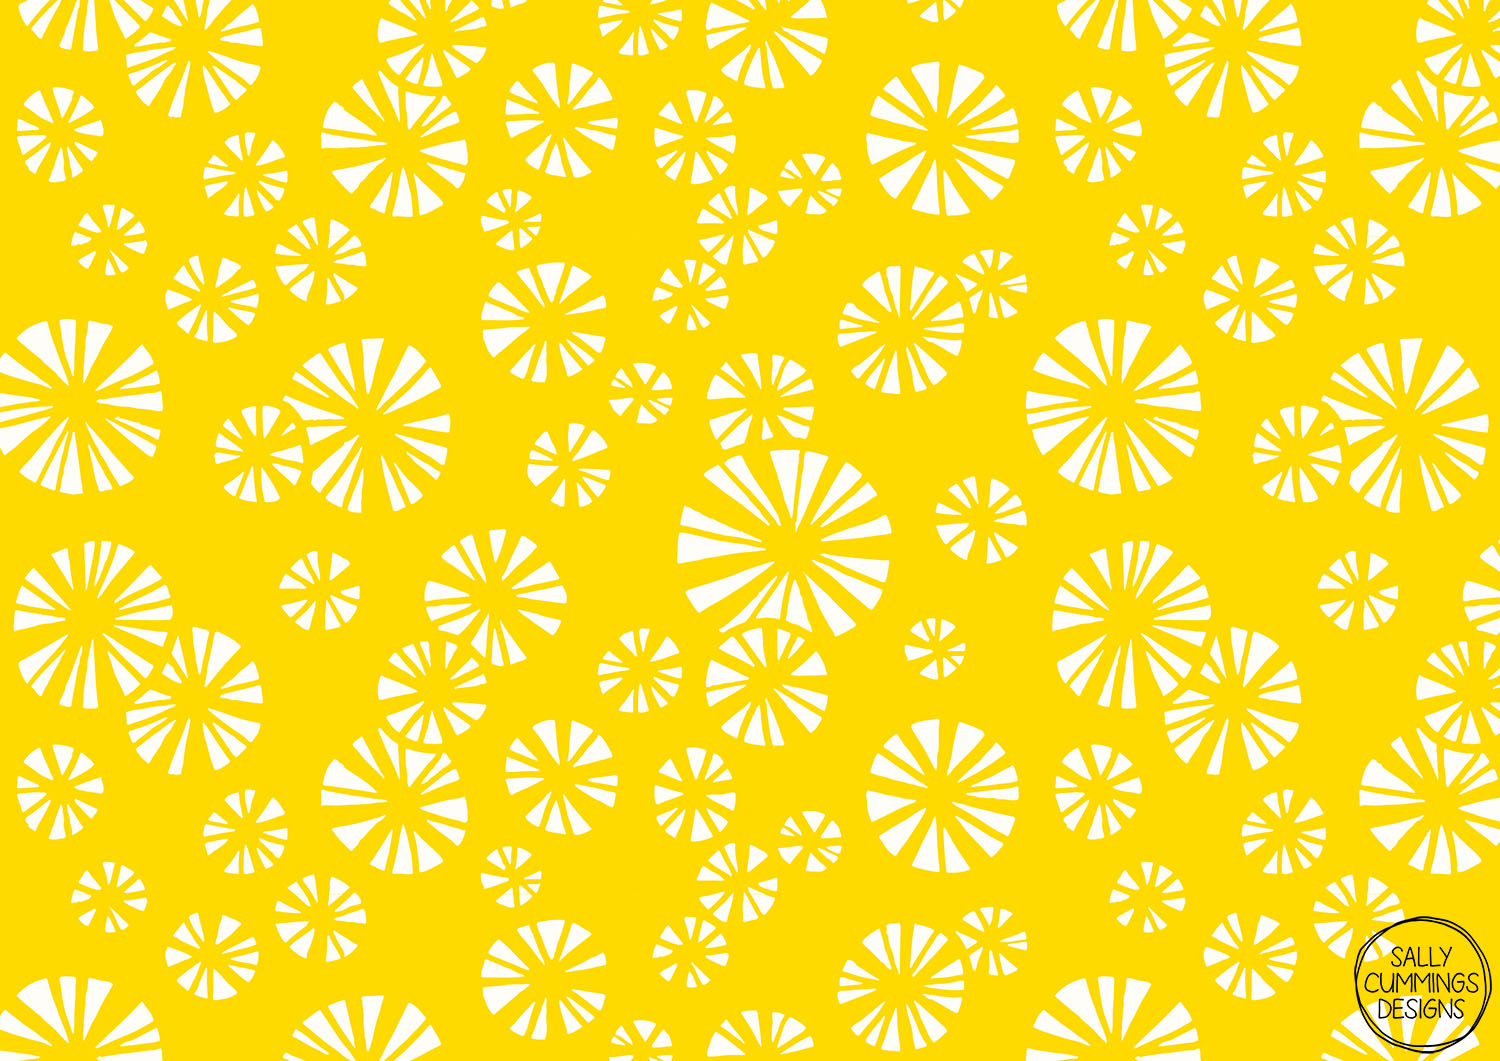 Yellow starbursts repeating pattern